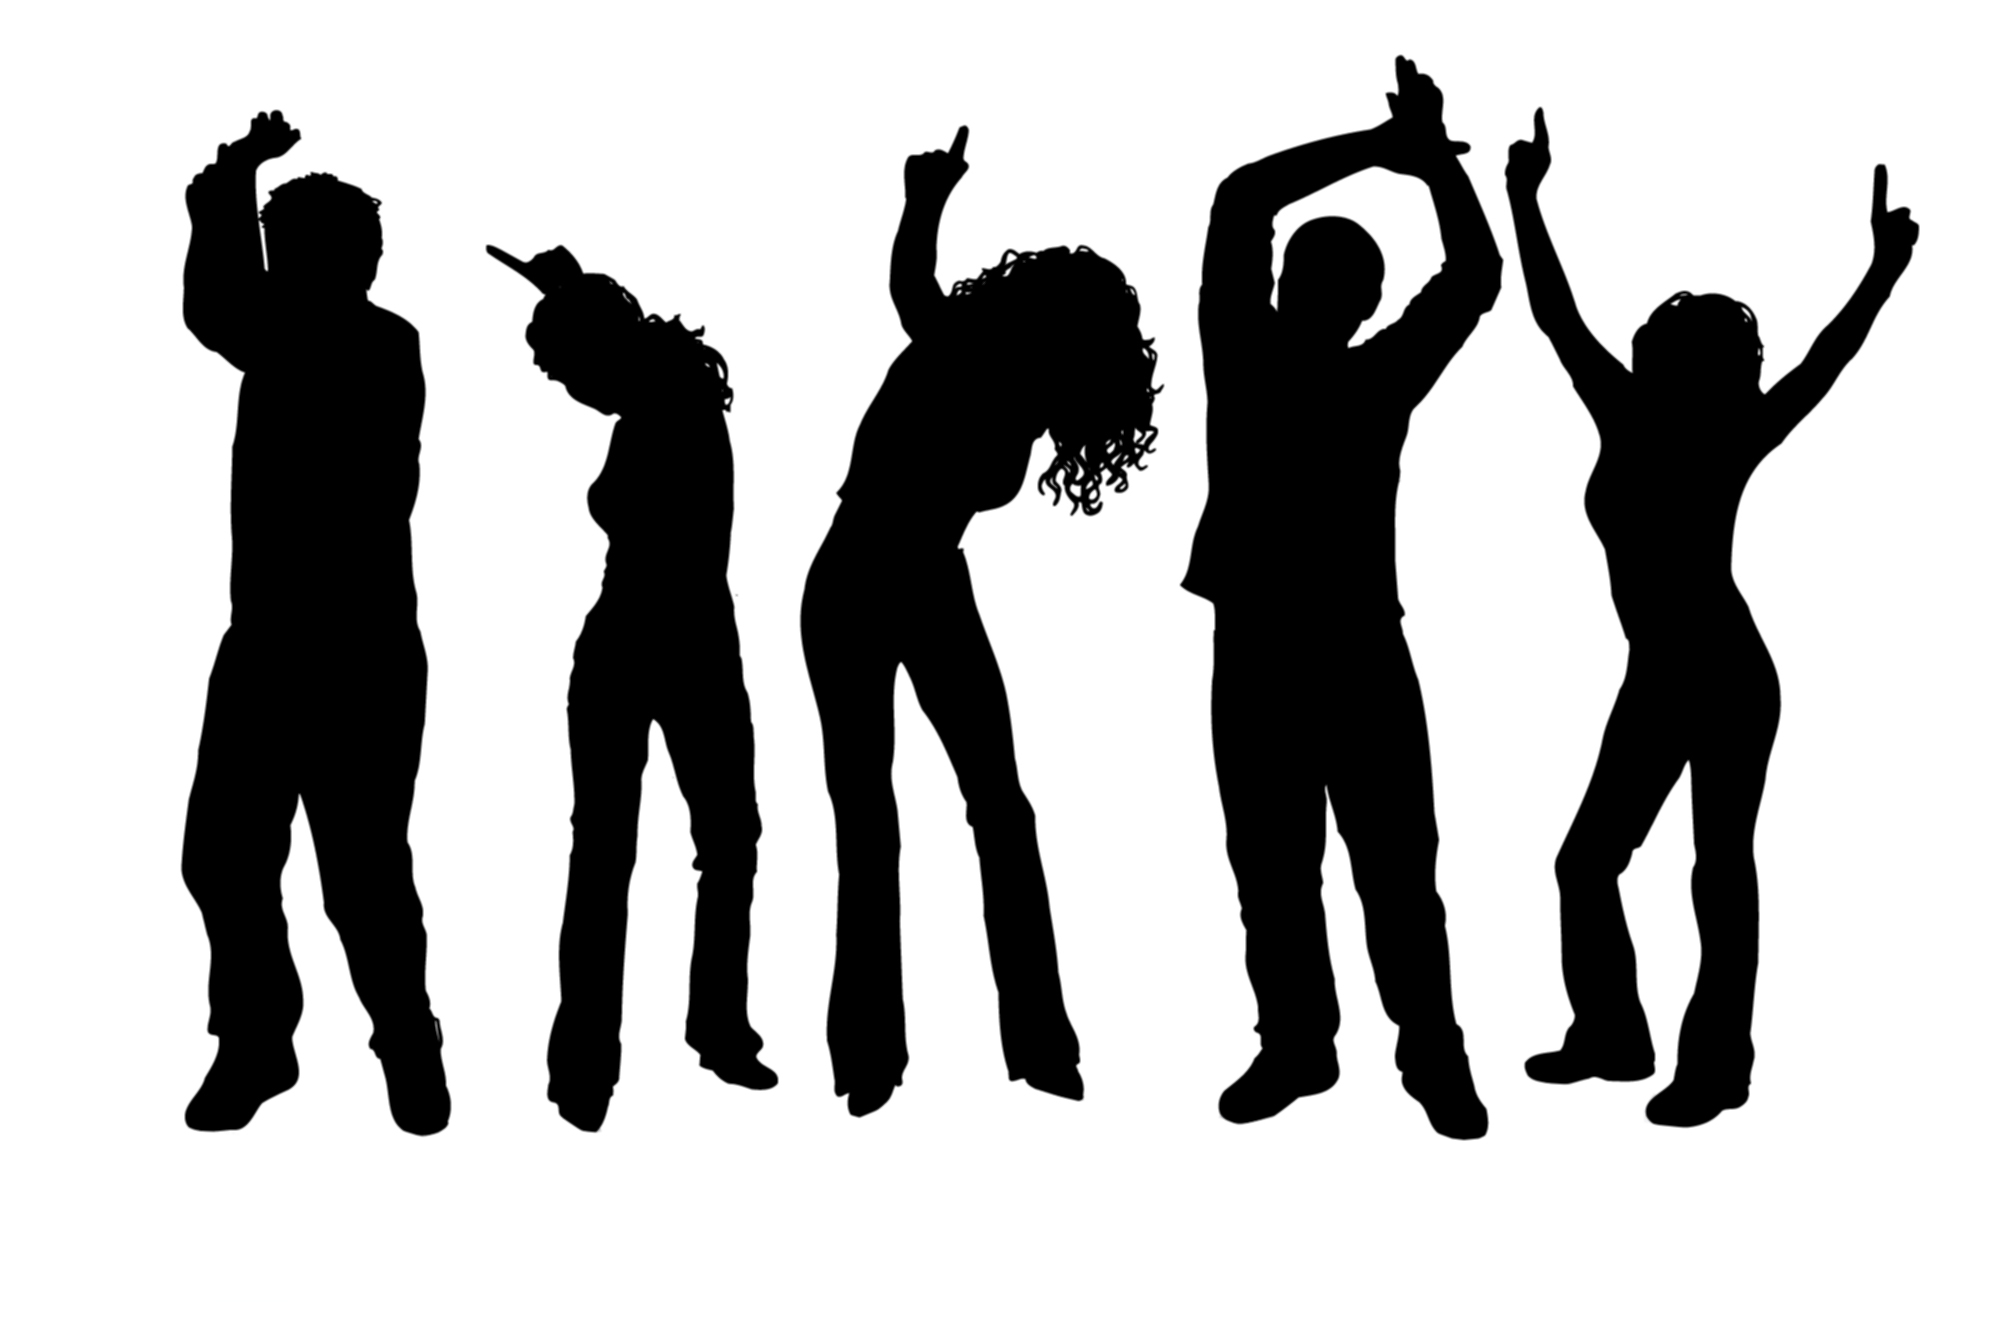 Free clipart of a outlining of crowd dancing picture transparent download Free Dance Cliparts, Download Free Clip Art, Free Clip Art on ... picture transparent download